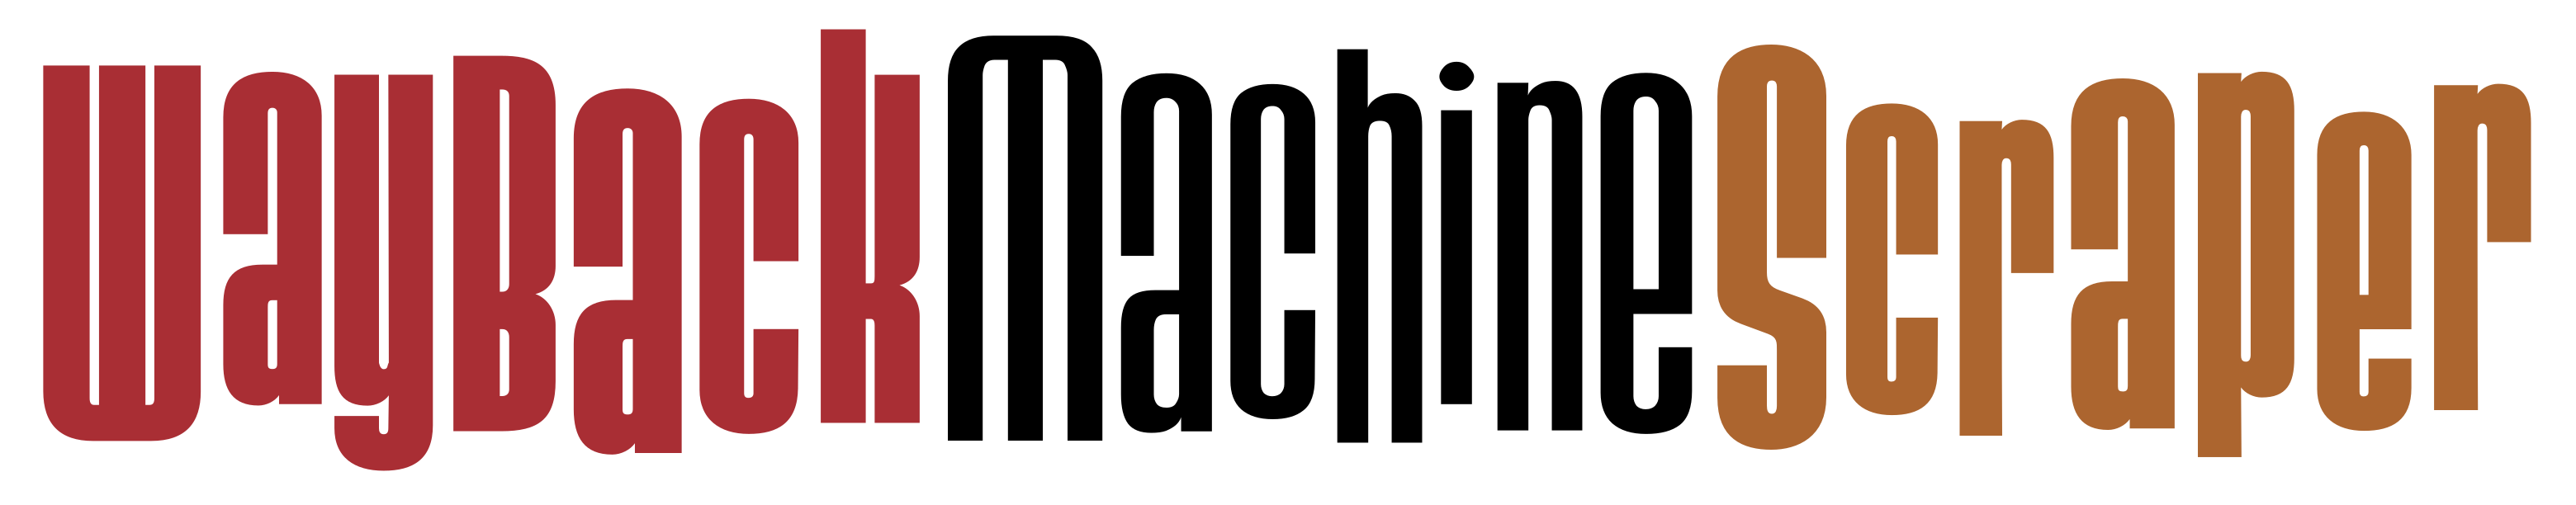 The Wayback Machine Scraper Logo